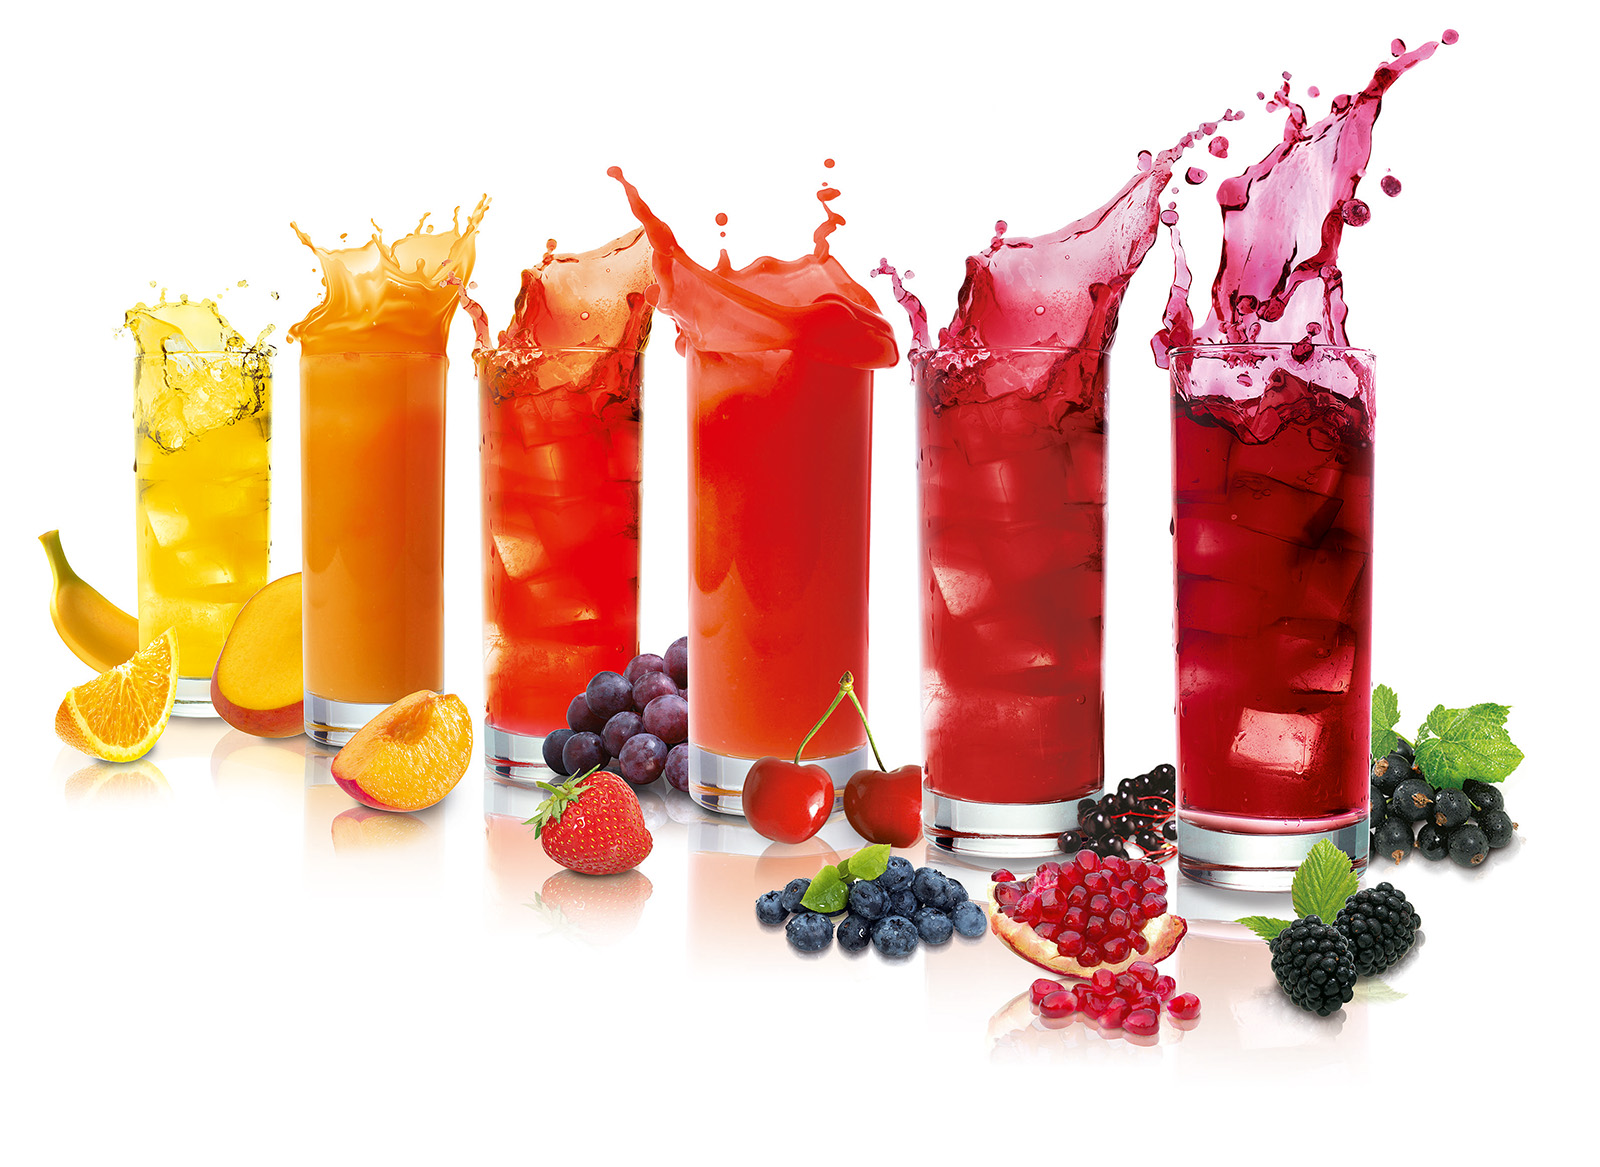 consumer perception in soft drinks company The future of healthy drinks  soft drinks industry consumer habits are rapidly evolving as people become  shaking up the perception of drinks.